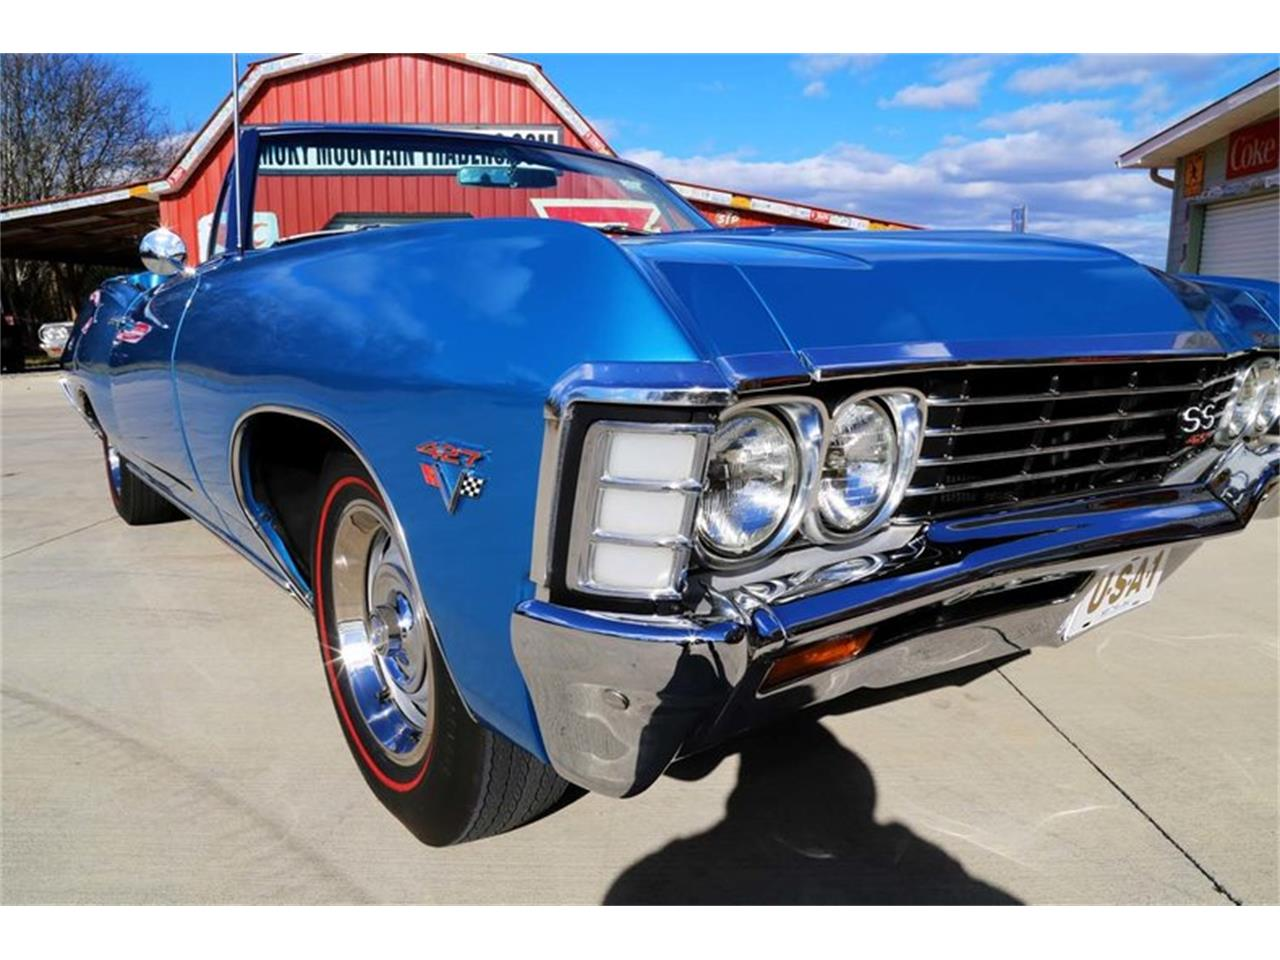 1967 Chevrolet Impala (CC-1081924) for sale in Lenoir City, Tennessee